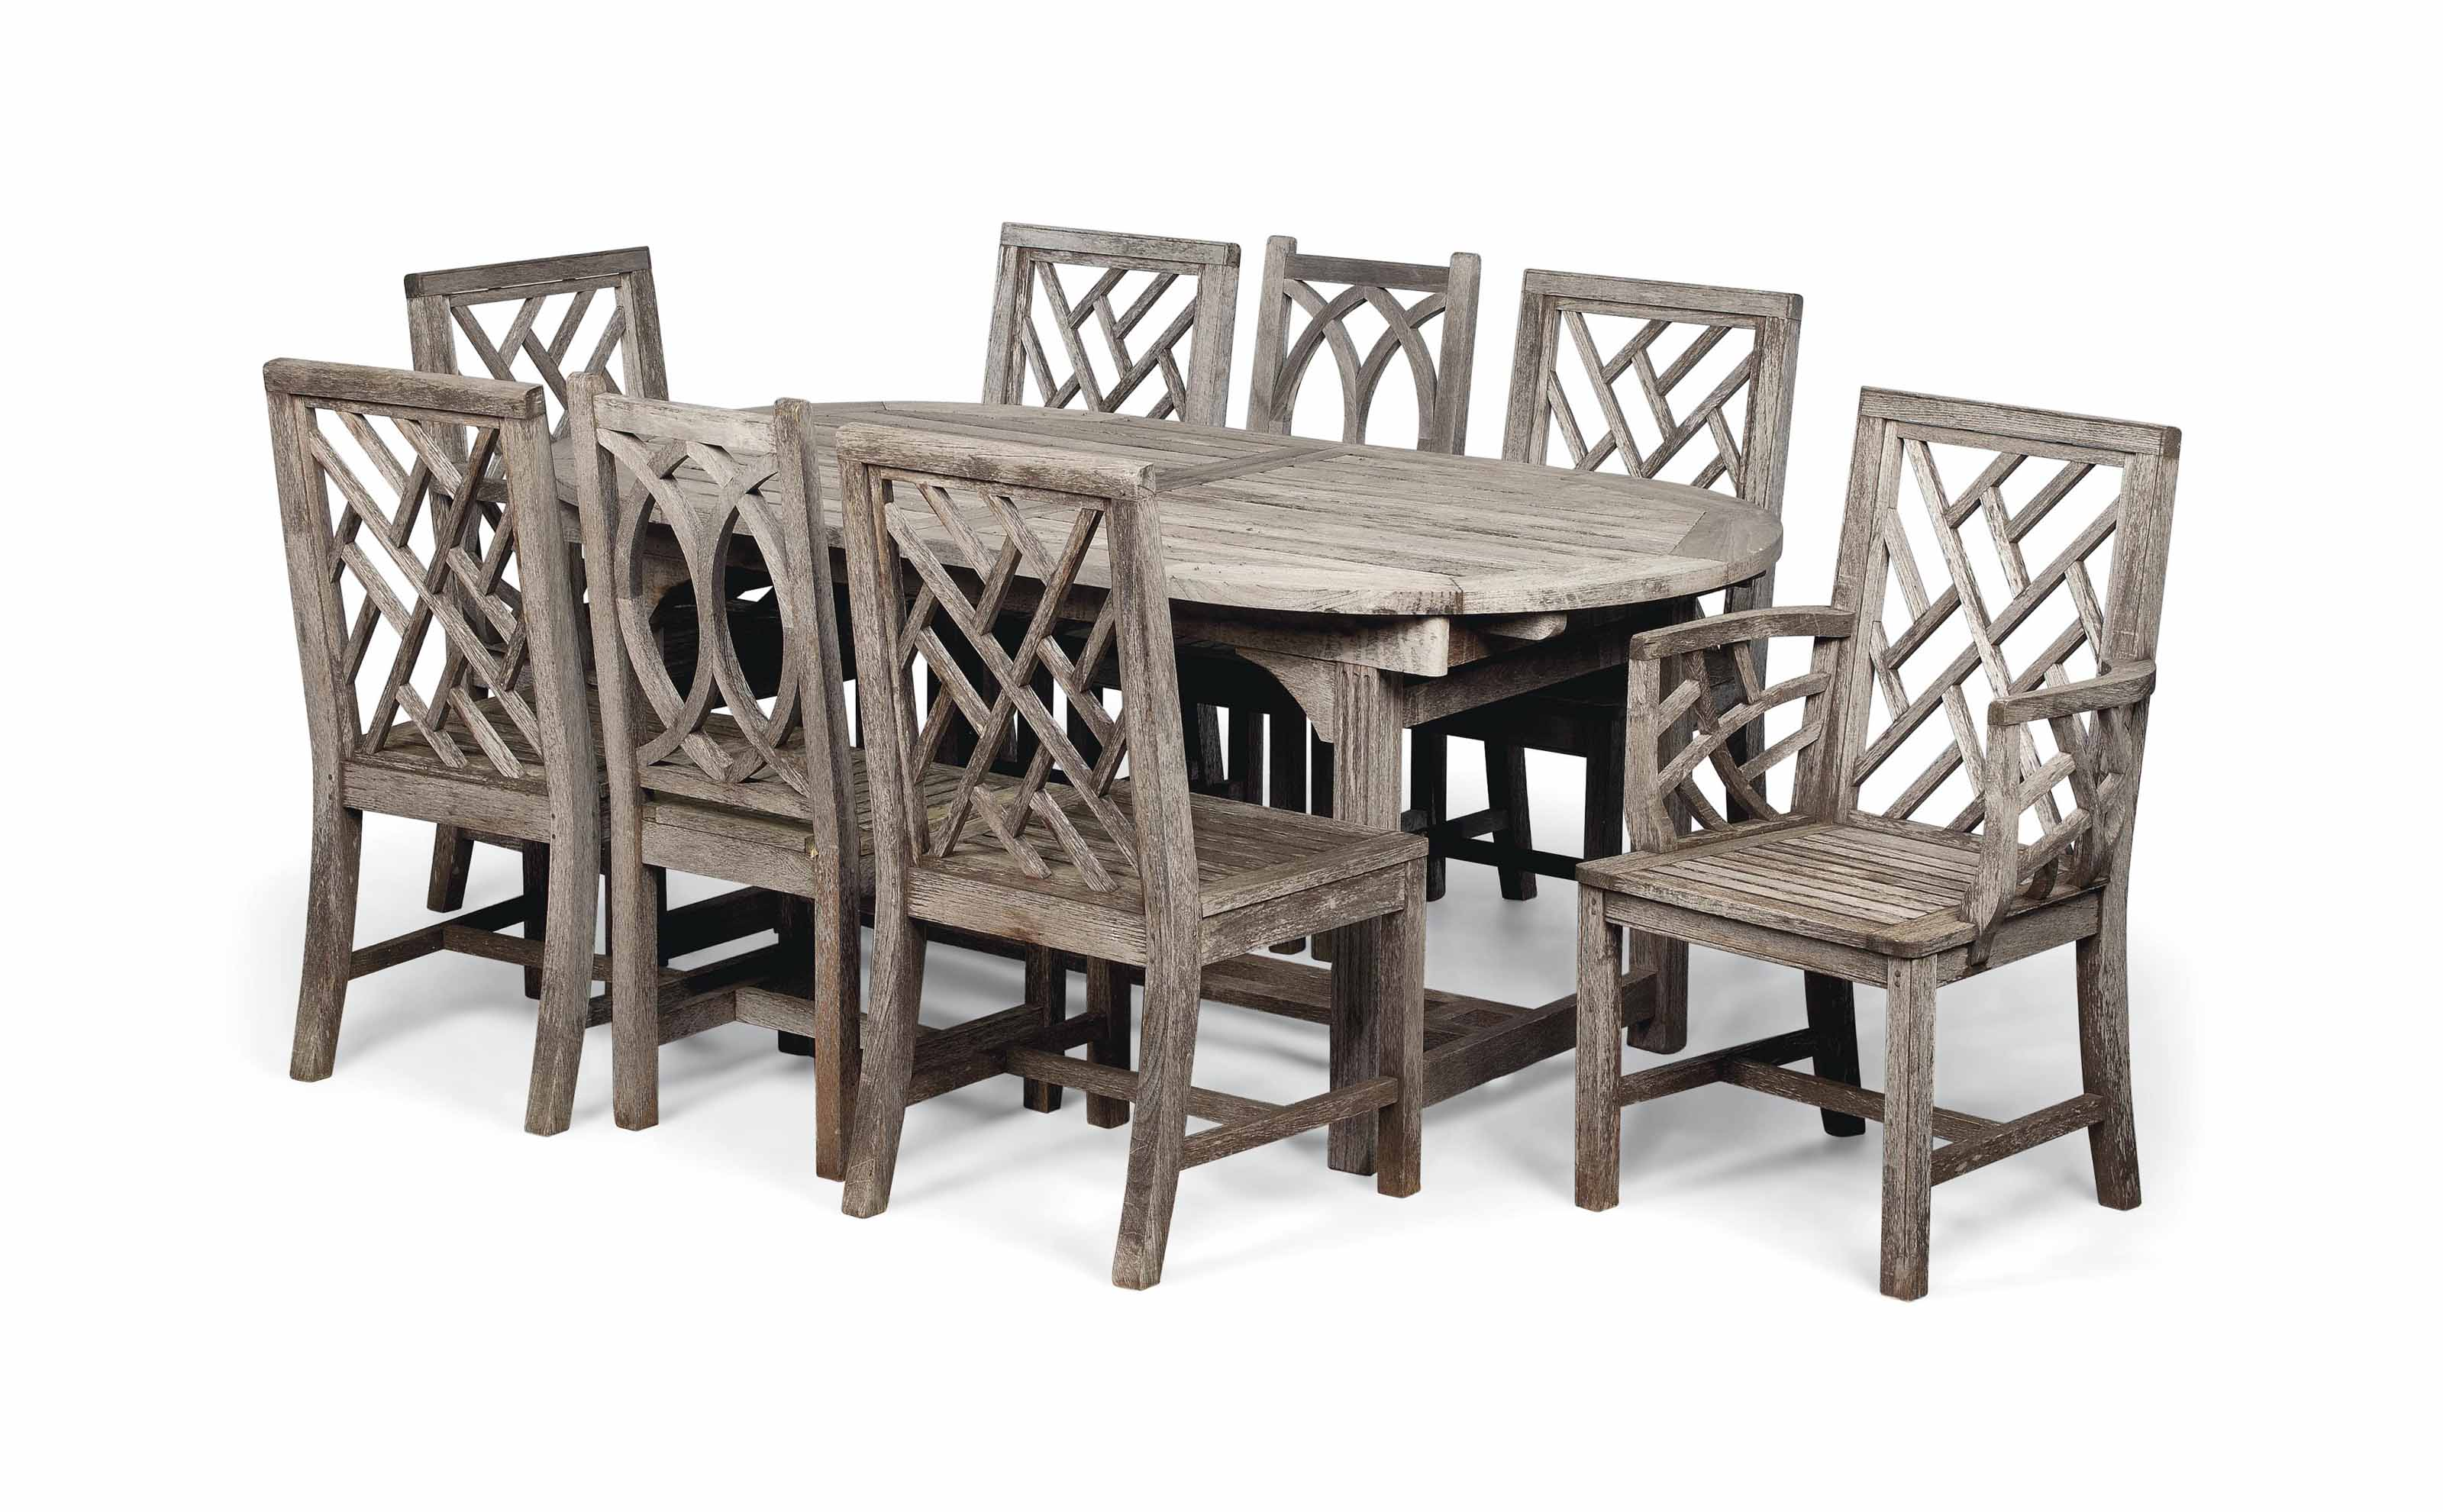 A SUITE OF HARDWOOD GARDEN FURNITURE  BY JULIAN CHICHESTER, LATE